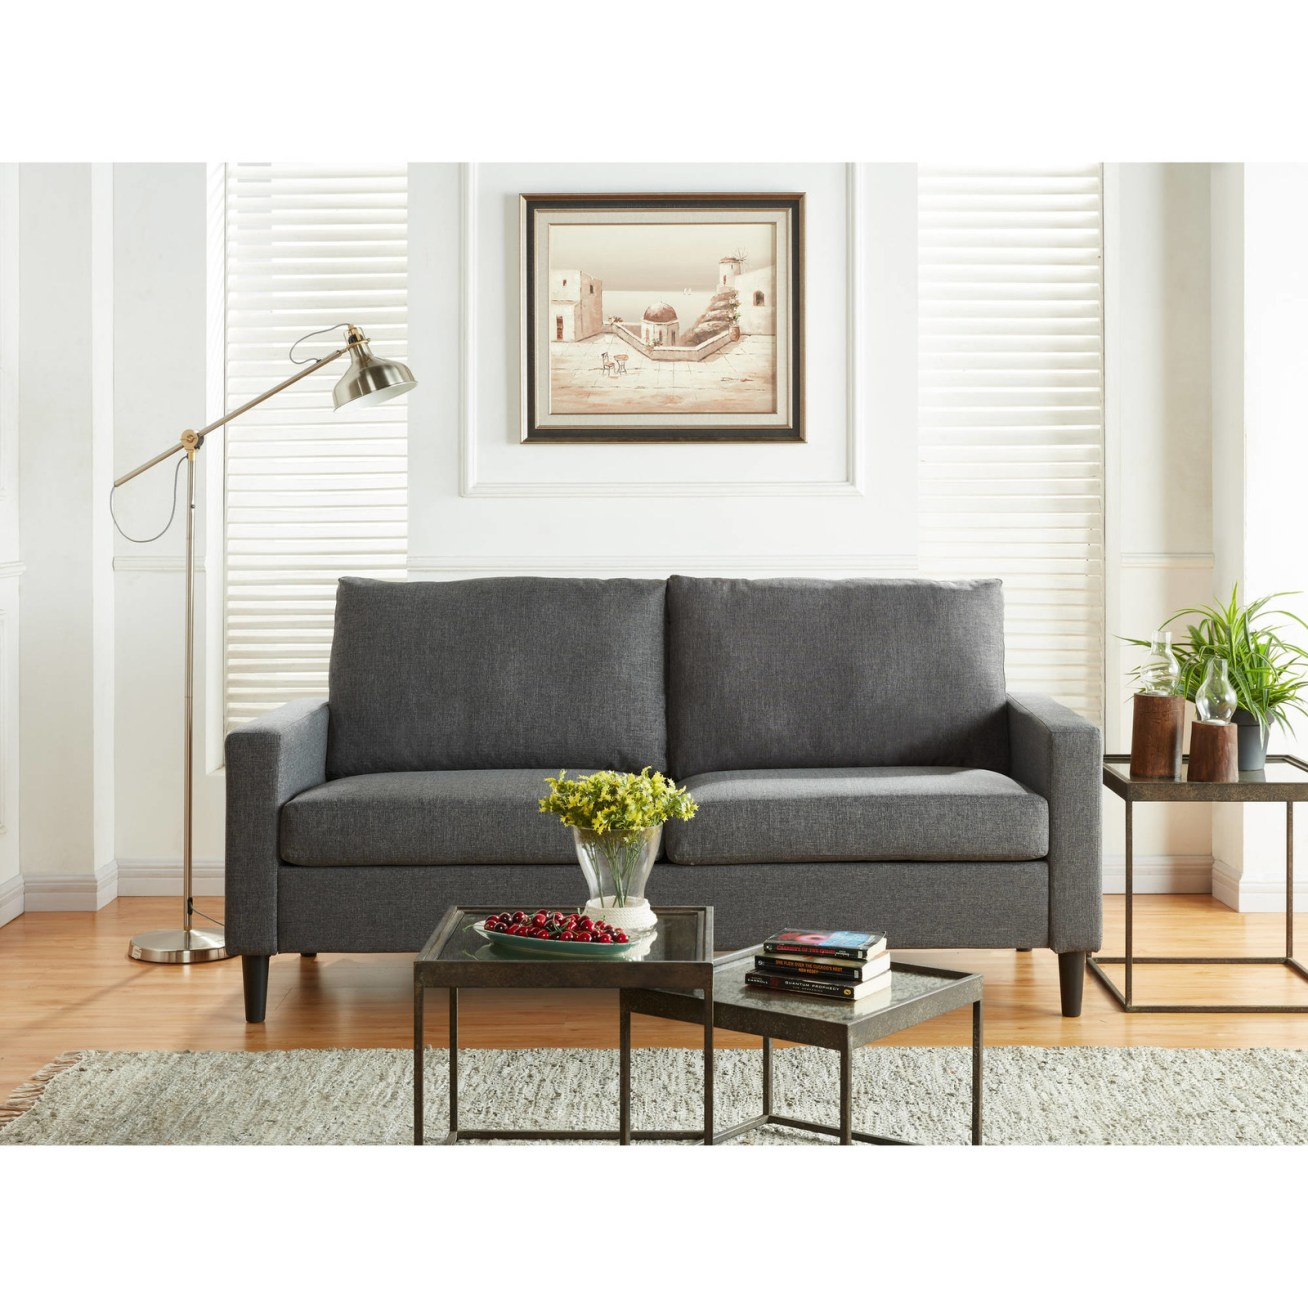 "Promising review: ""The sofa is very attractive, modern, and sleek. We bought it for our wine bar/lounge TV room and it's not too big, not too small — the perfect size for a party of three (hubby, dog, and me). My giant schnauzer was already trying to take ownership of it even before it was fully assembled! My husband likes the firmness and support of the cushions. It seems like it will hold up well over time. Be sure to read the assembly instructions carefully and you will not have any issues. You cannot beat the great value of this sofa. It looks a lot more expensive than it is. Thank you, Walmart!!!"" —StellasMumPrice: 9"